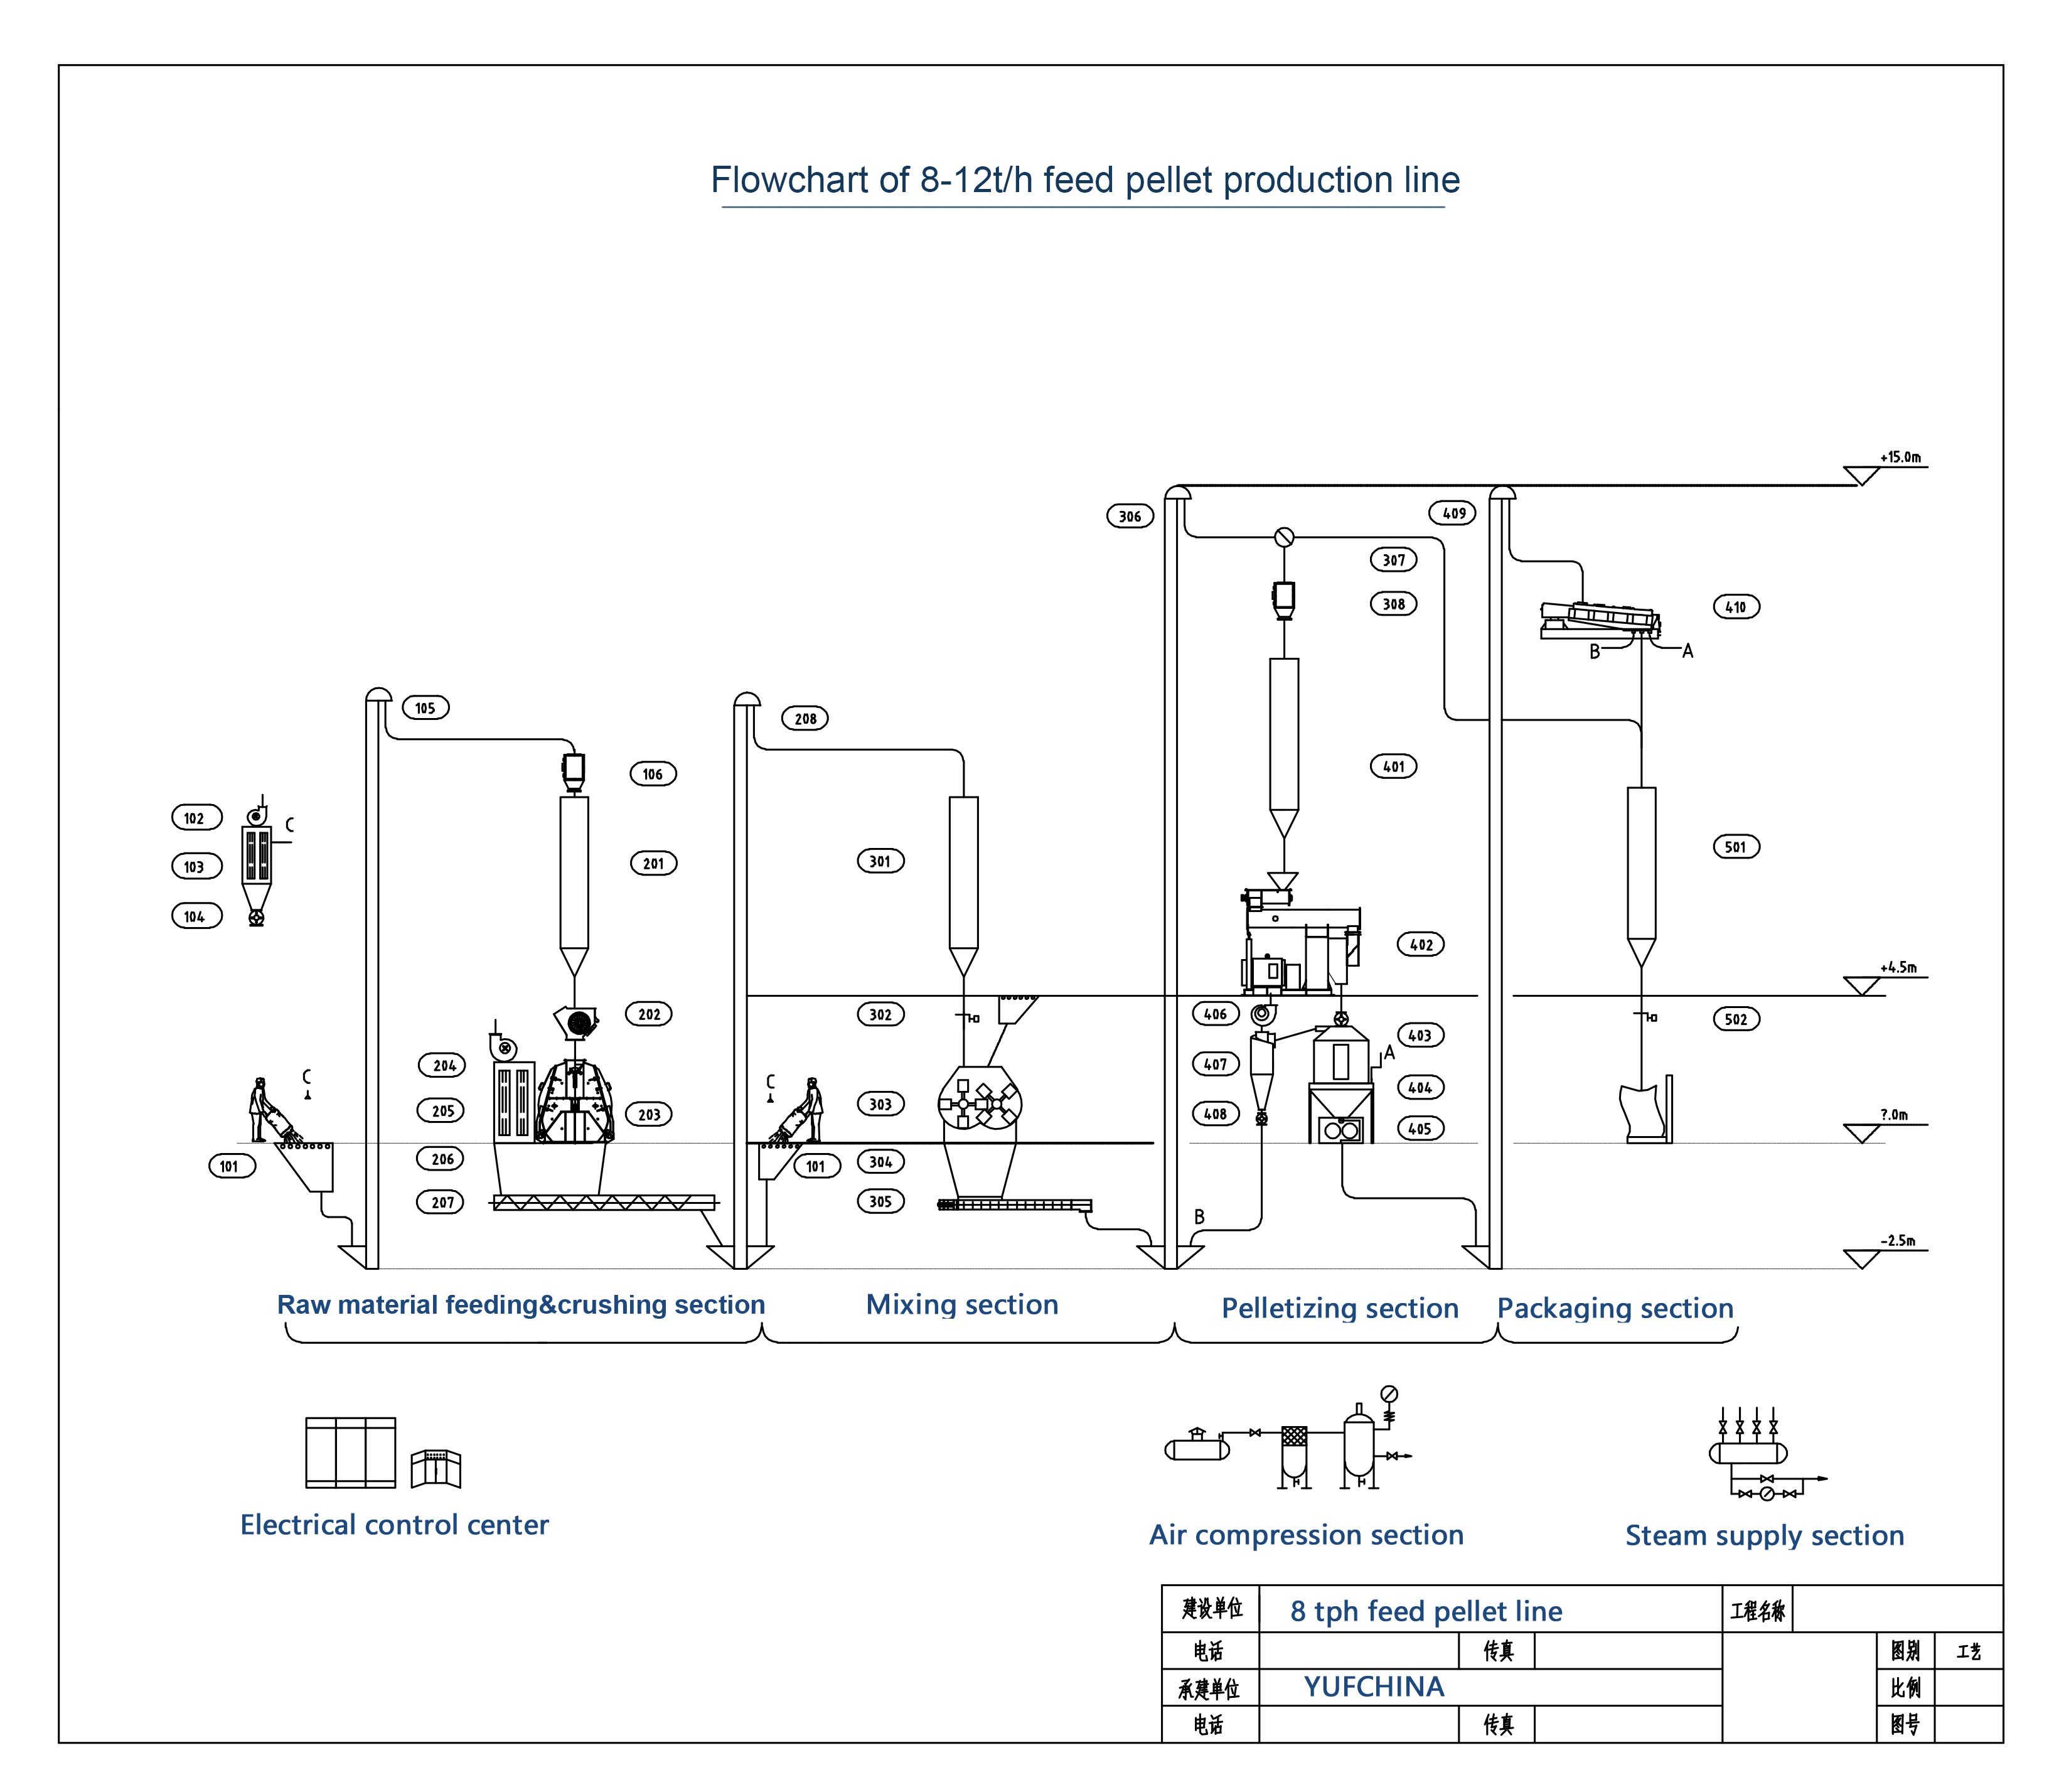 Flowchart of 8-10t/h feed pellet production line